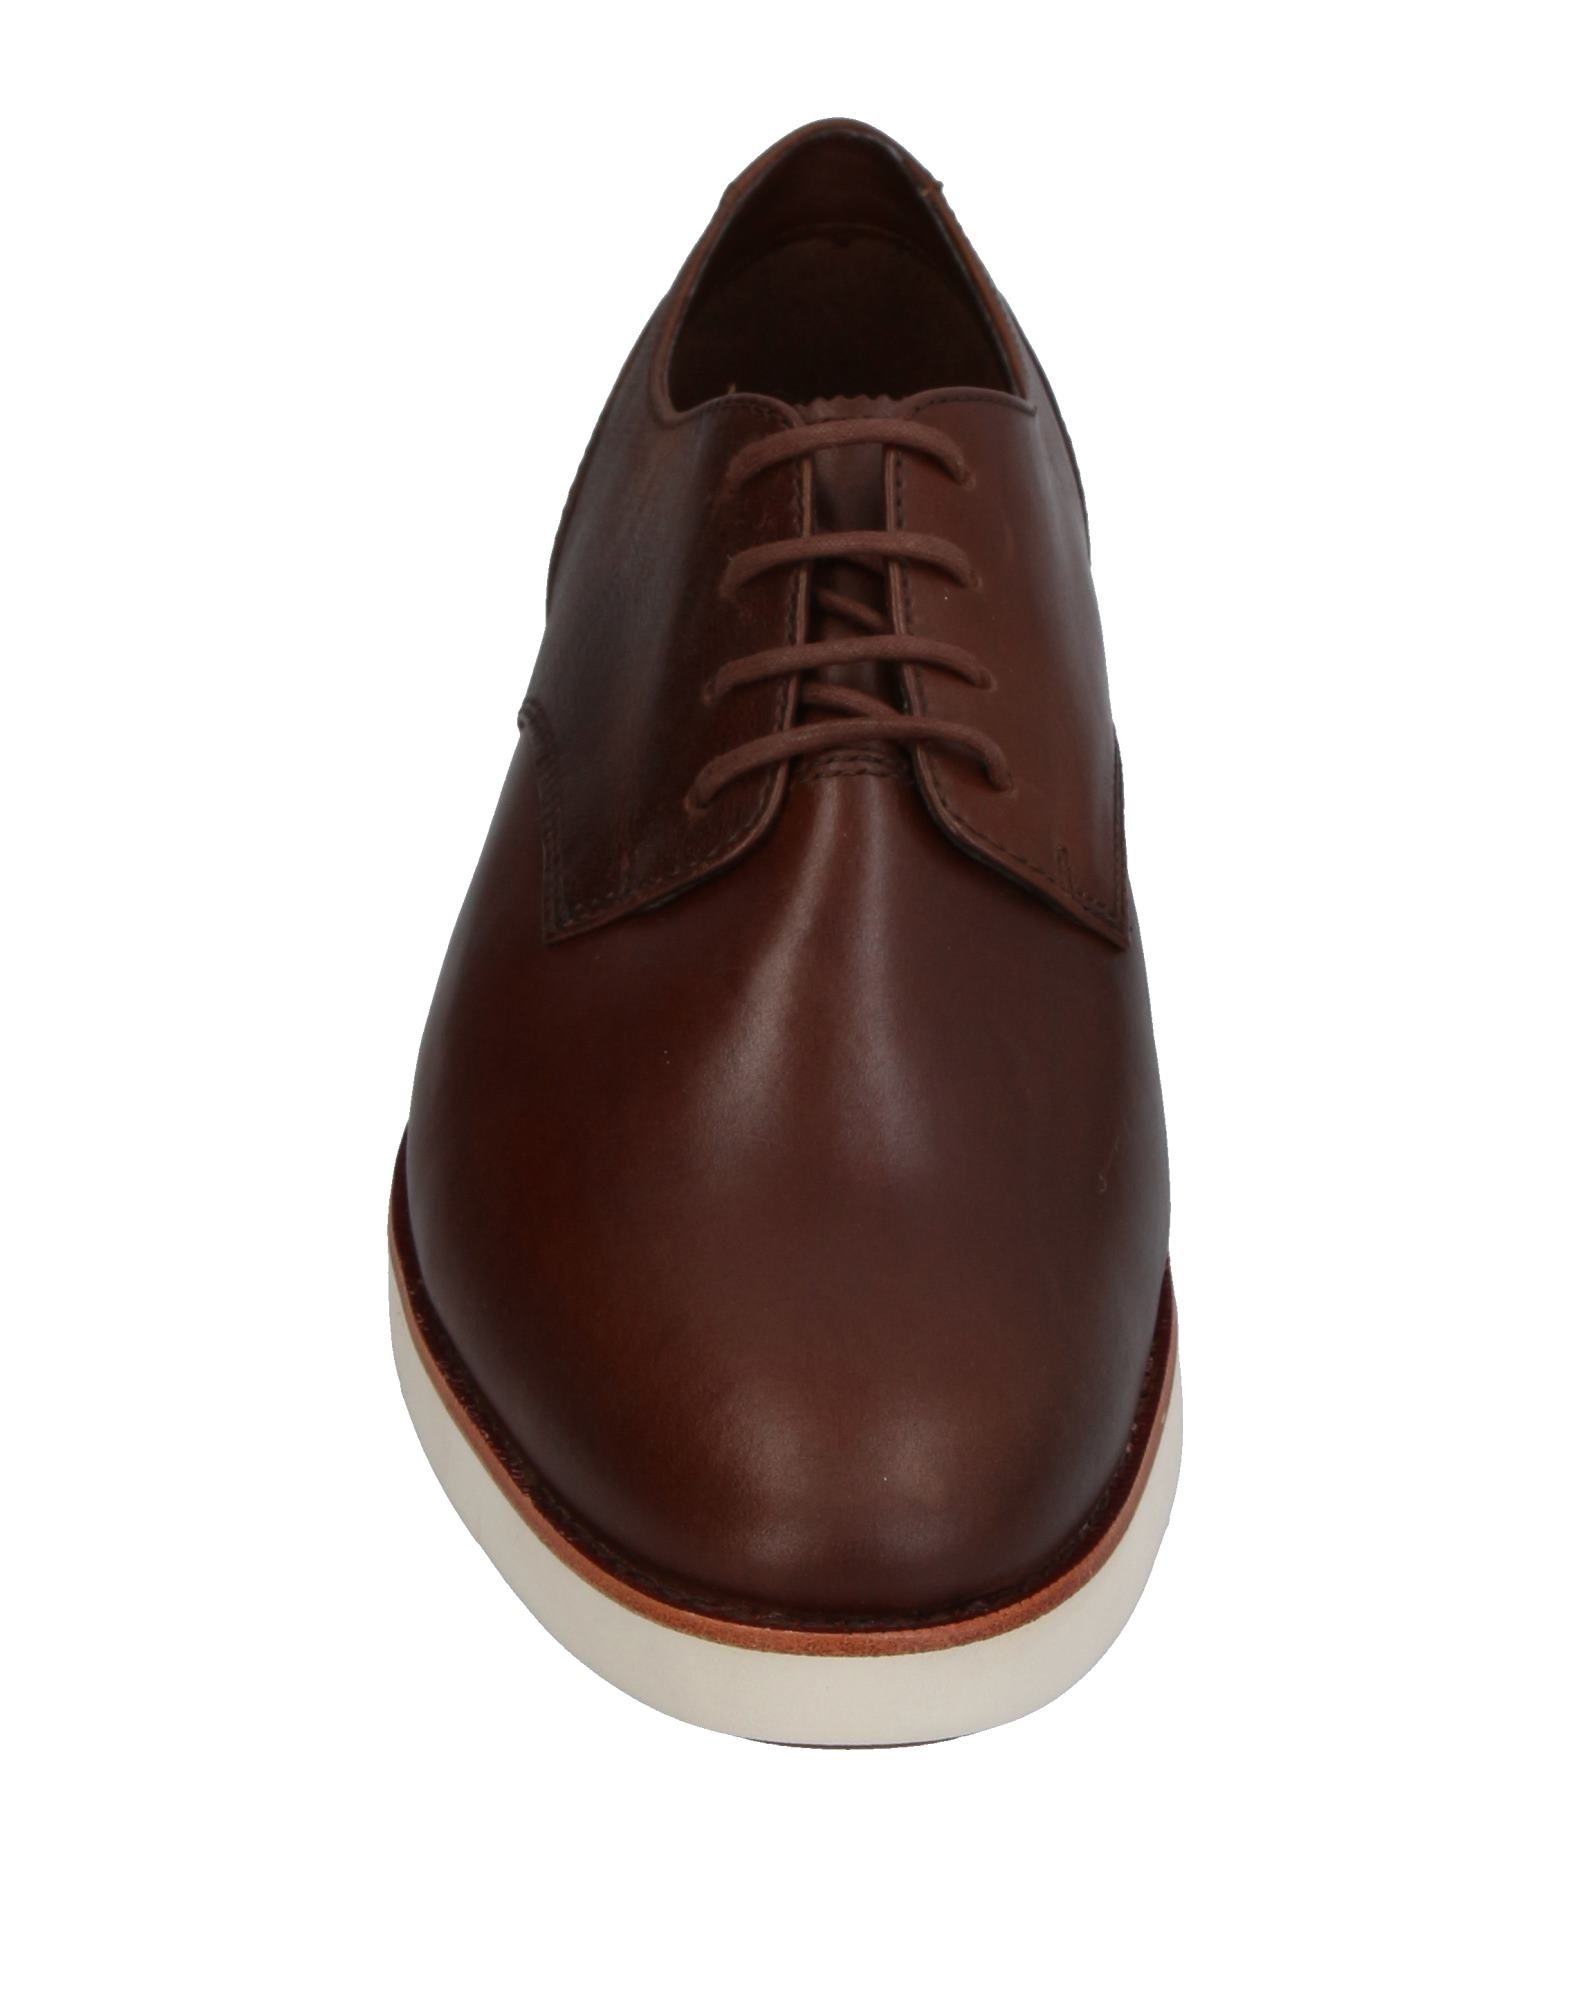 À À Lacets Lacets Homme Timberland Timberland Chaussures Chaussures lF5KJ1ucT3